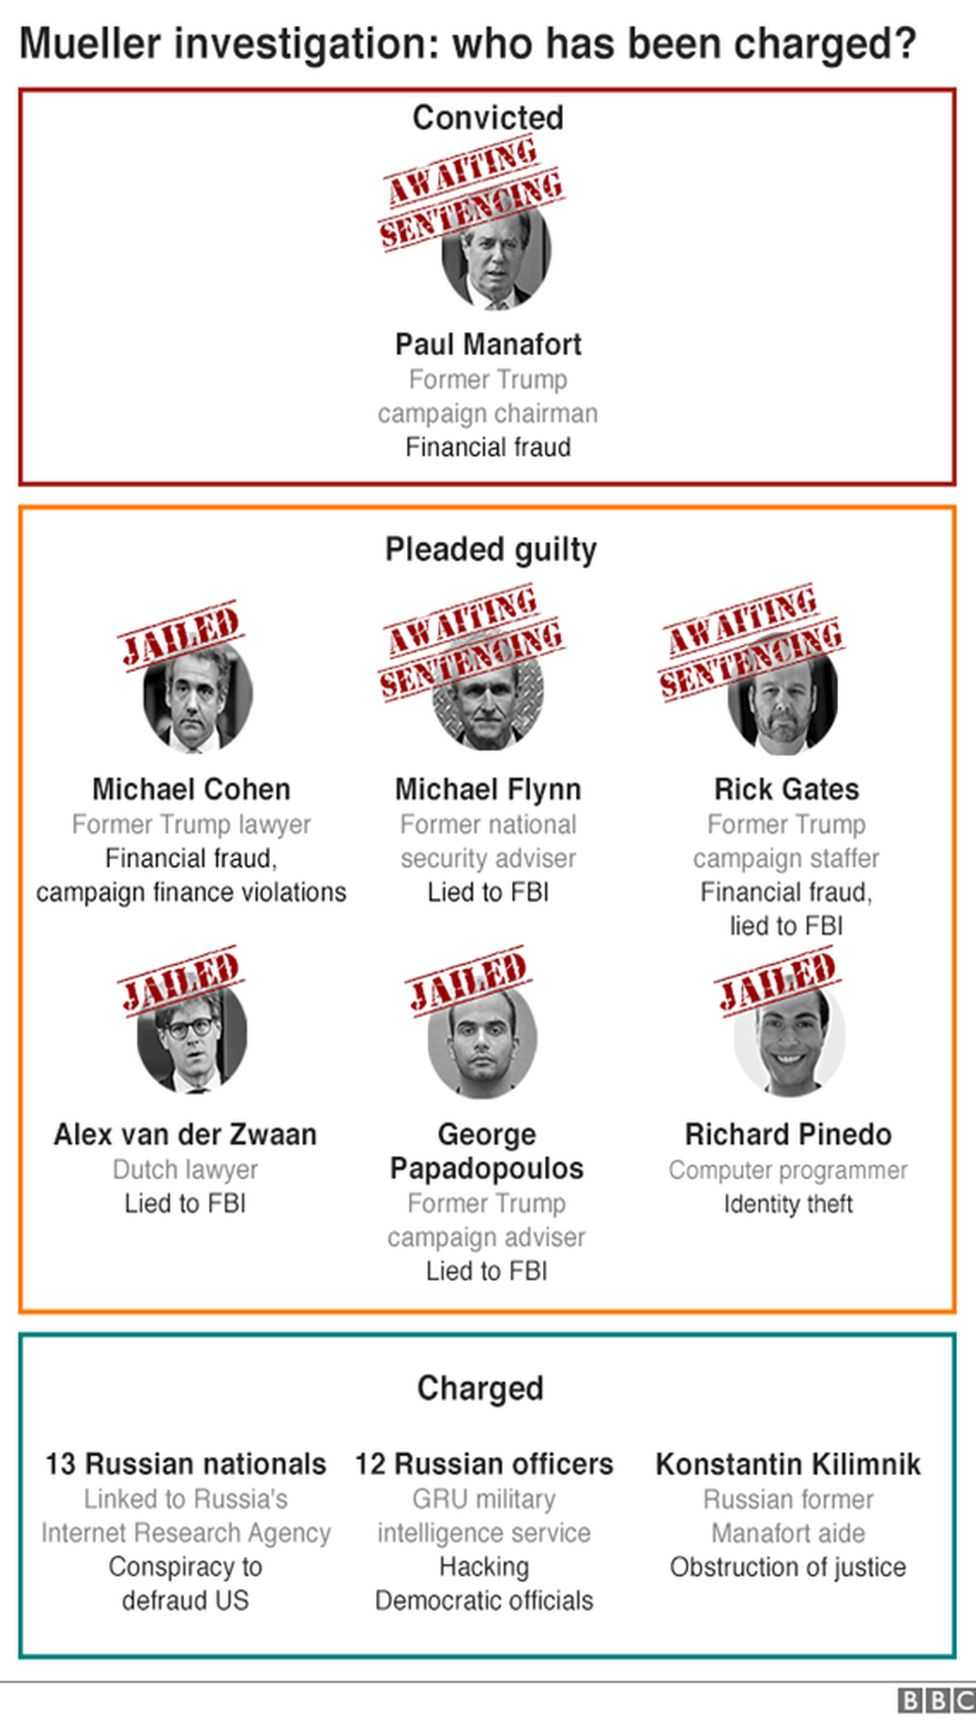 a guide to who has been implicated so far